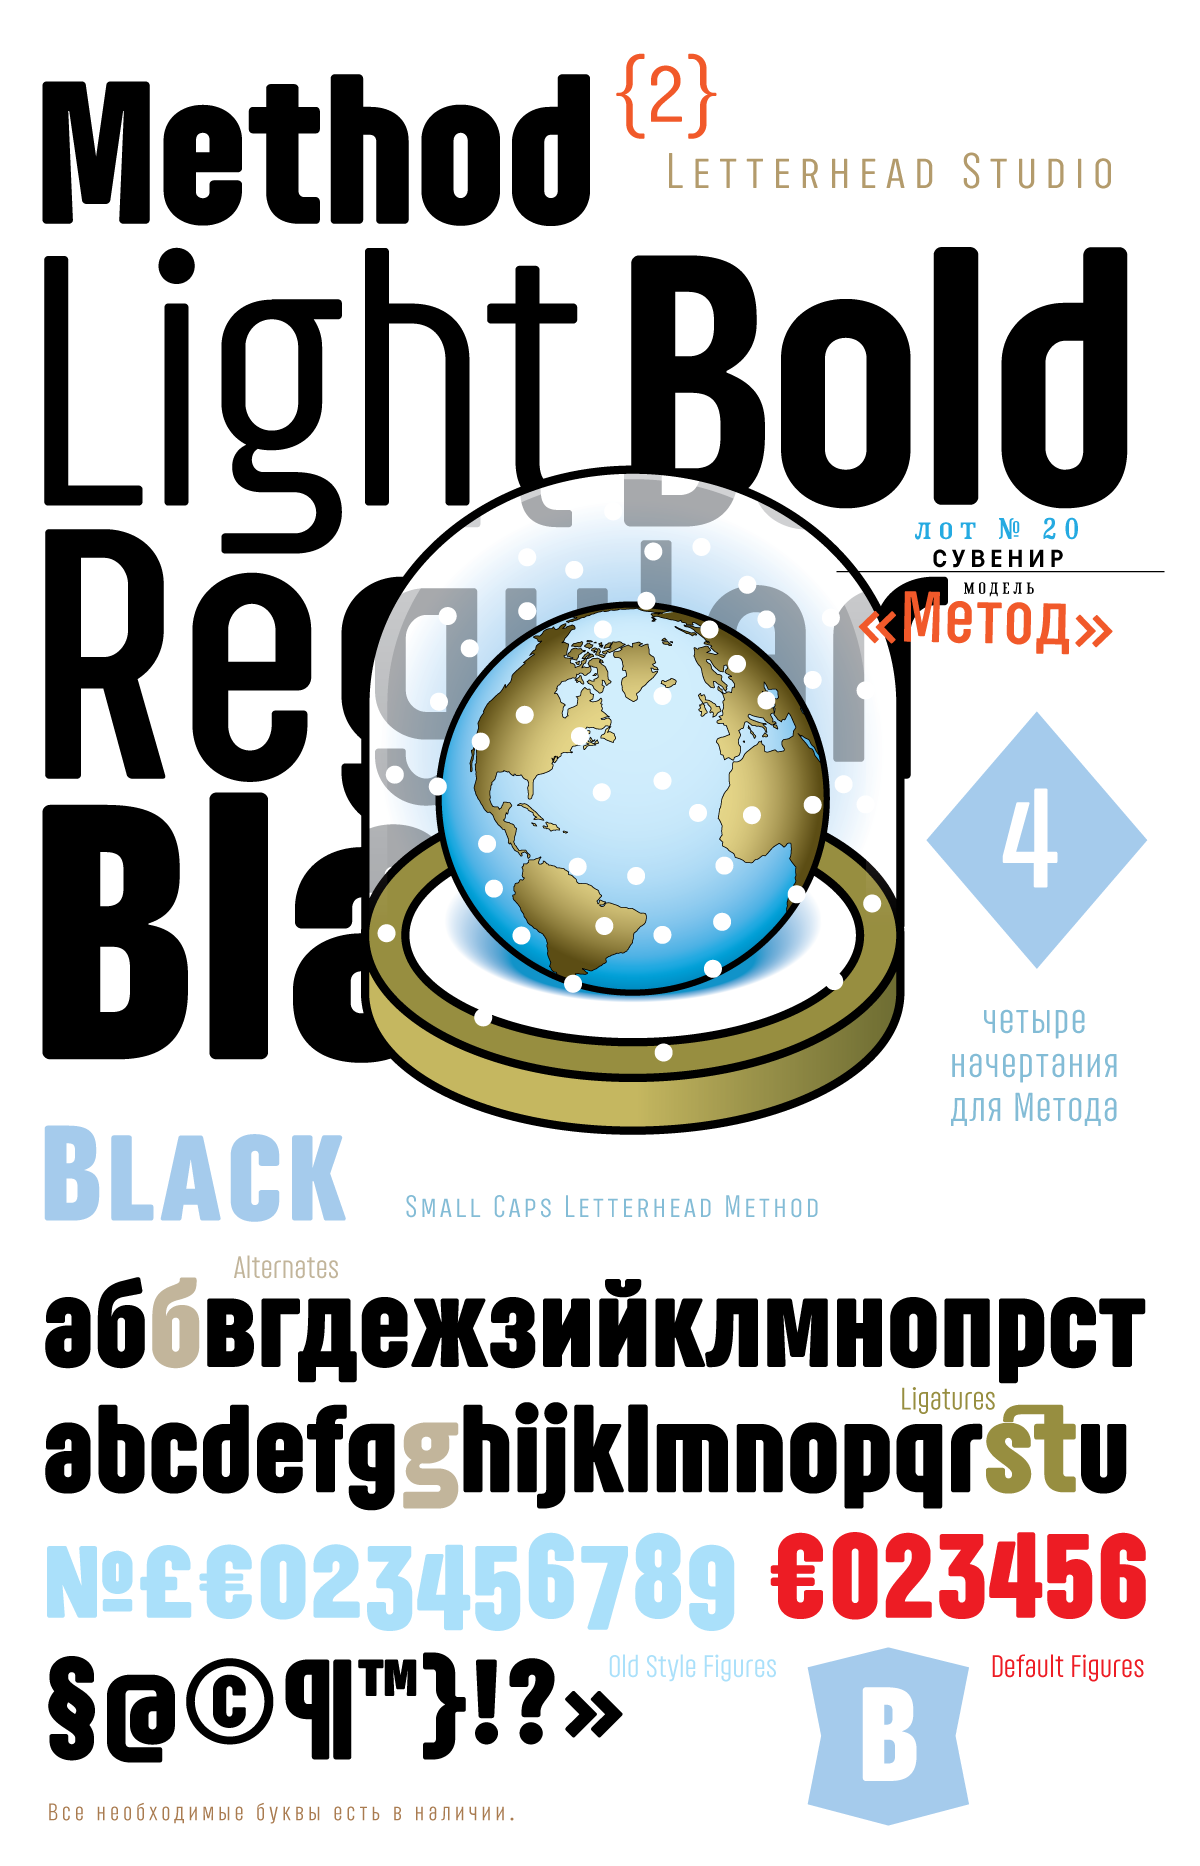 This is the exhibition poster for Method Two Typeface. Typeface and Illustration by Valerio Golyzhenkov